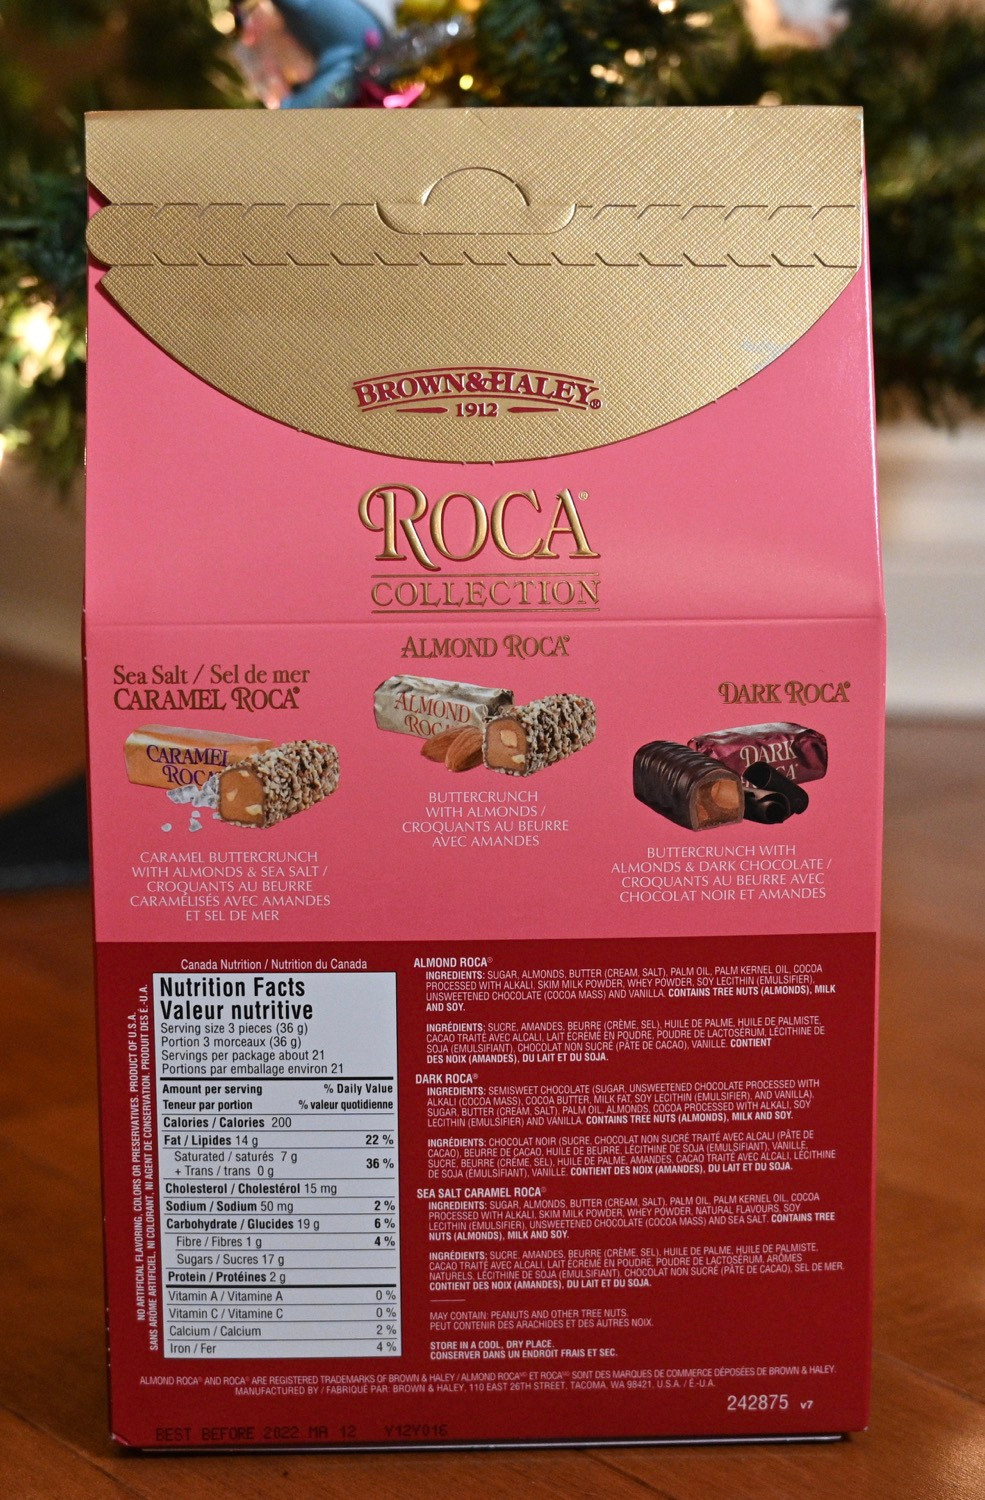 Costco Almond Roca Collection Nutrition & Ingredients